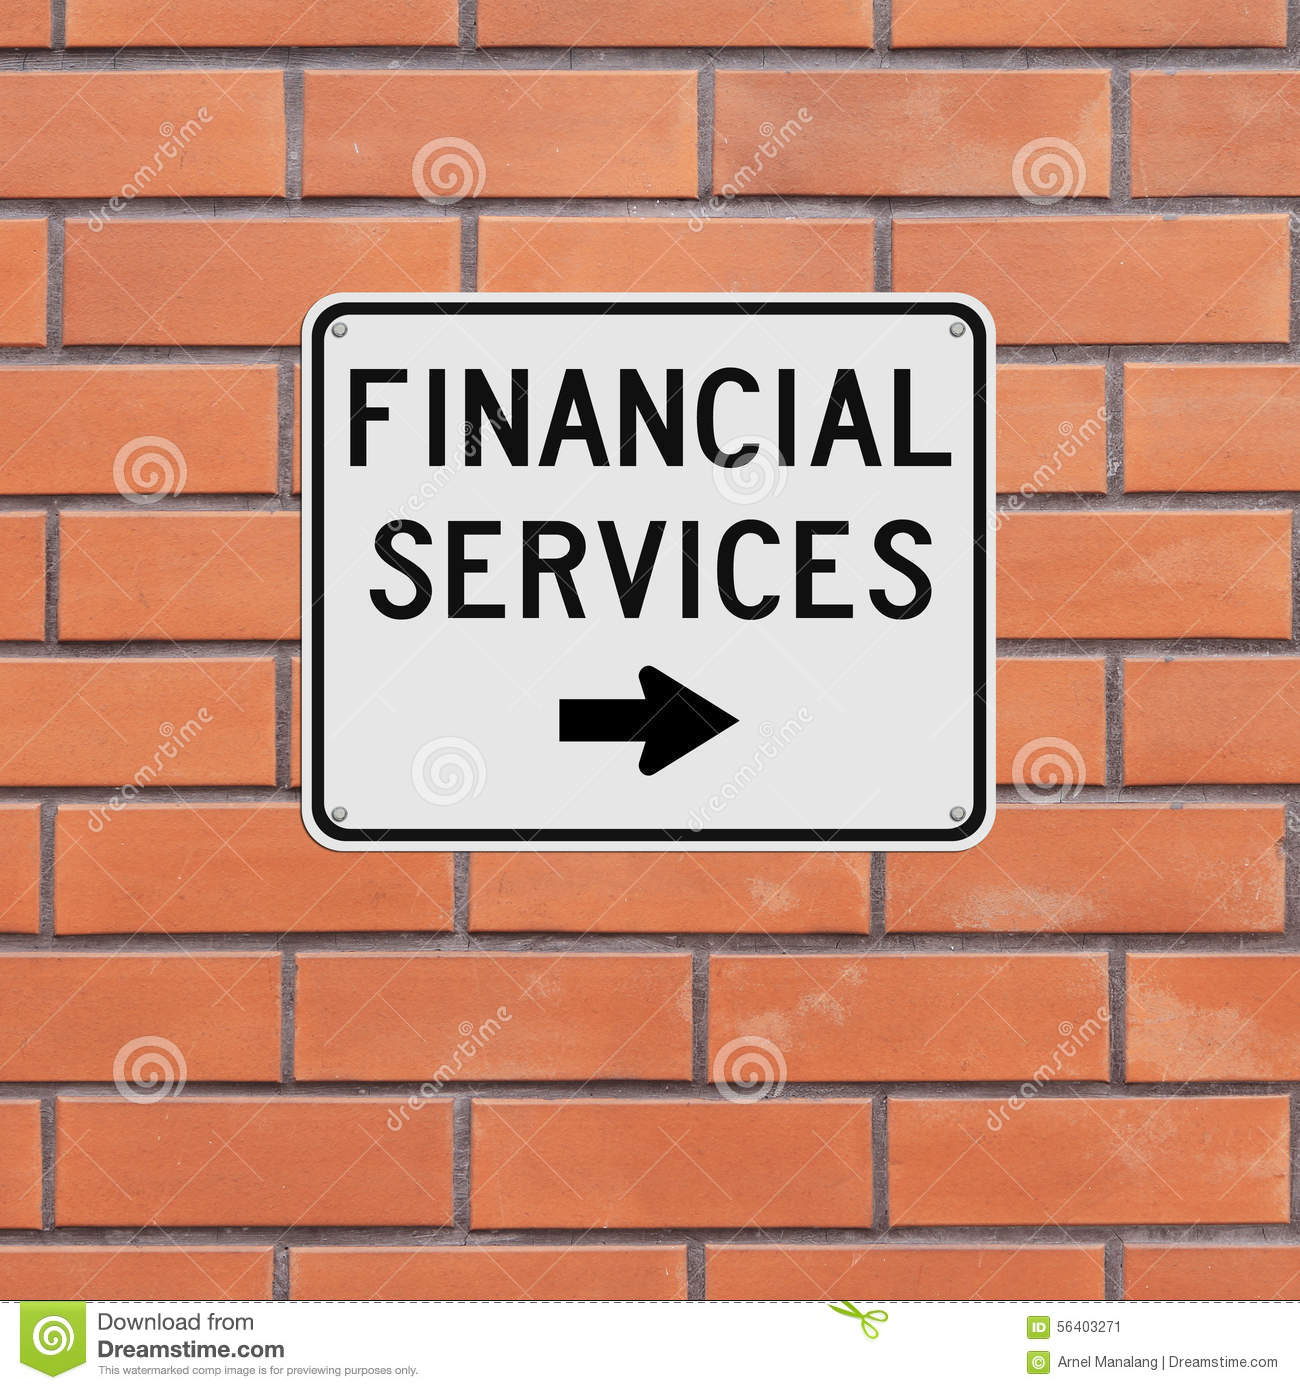 Finance Sign: Financial Services Stock Photo